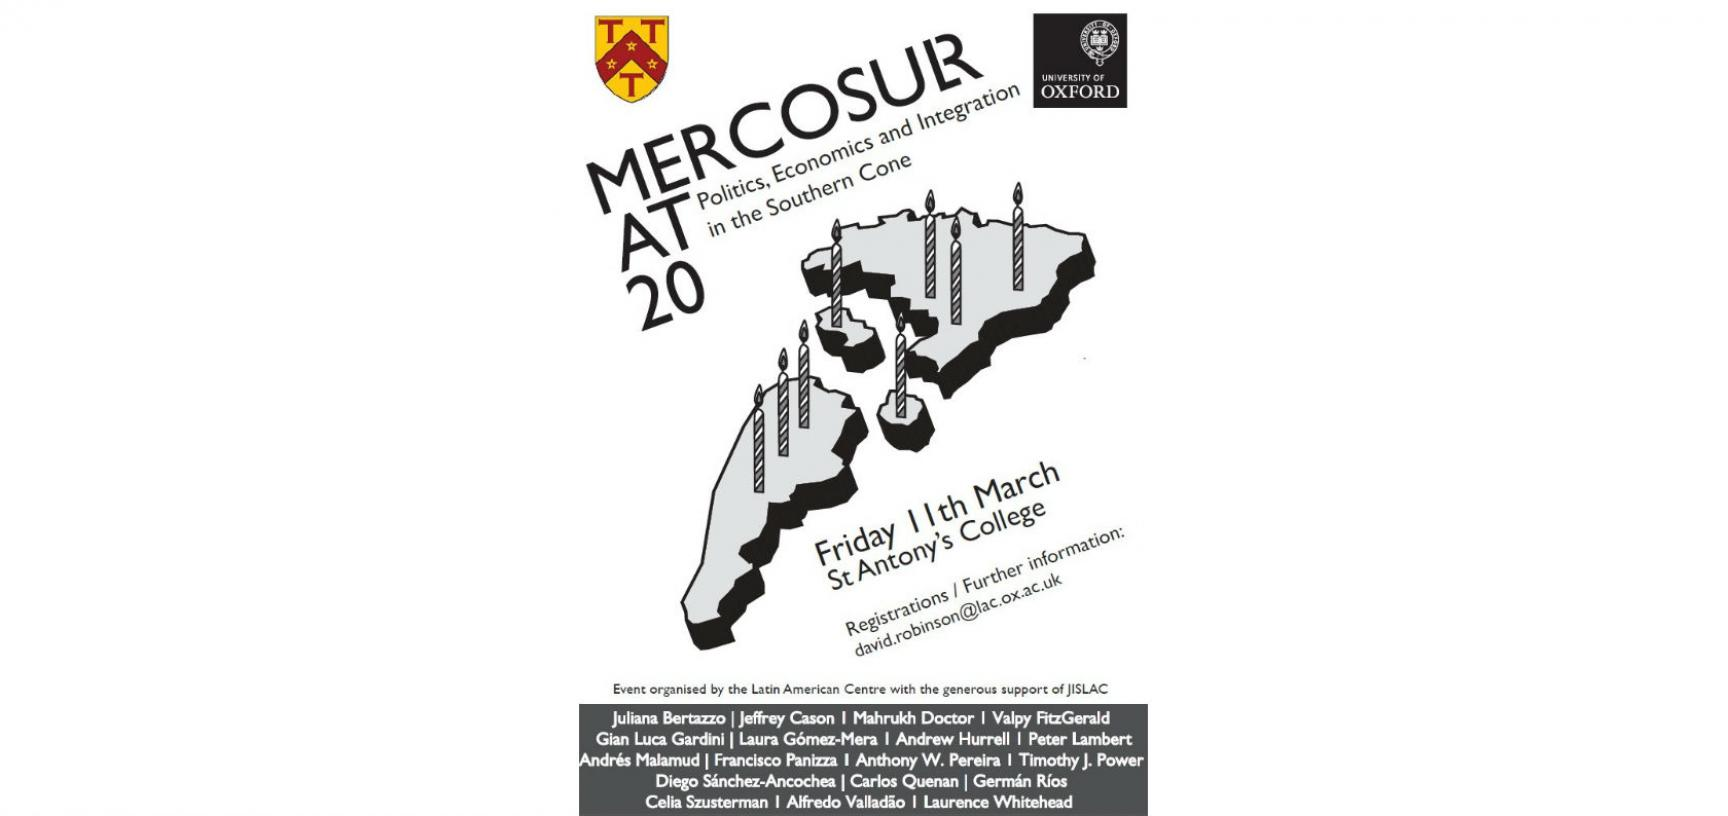 mercosur at 20 v2 edit